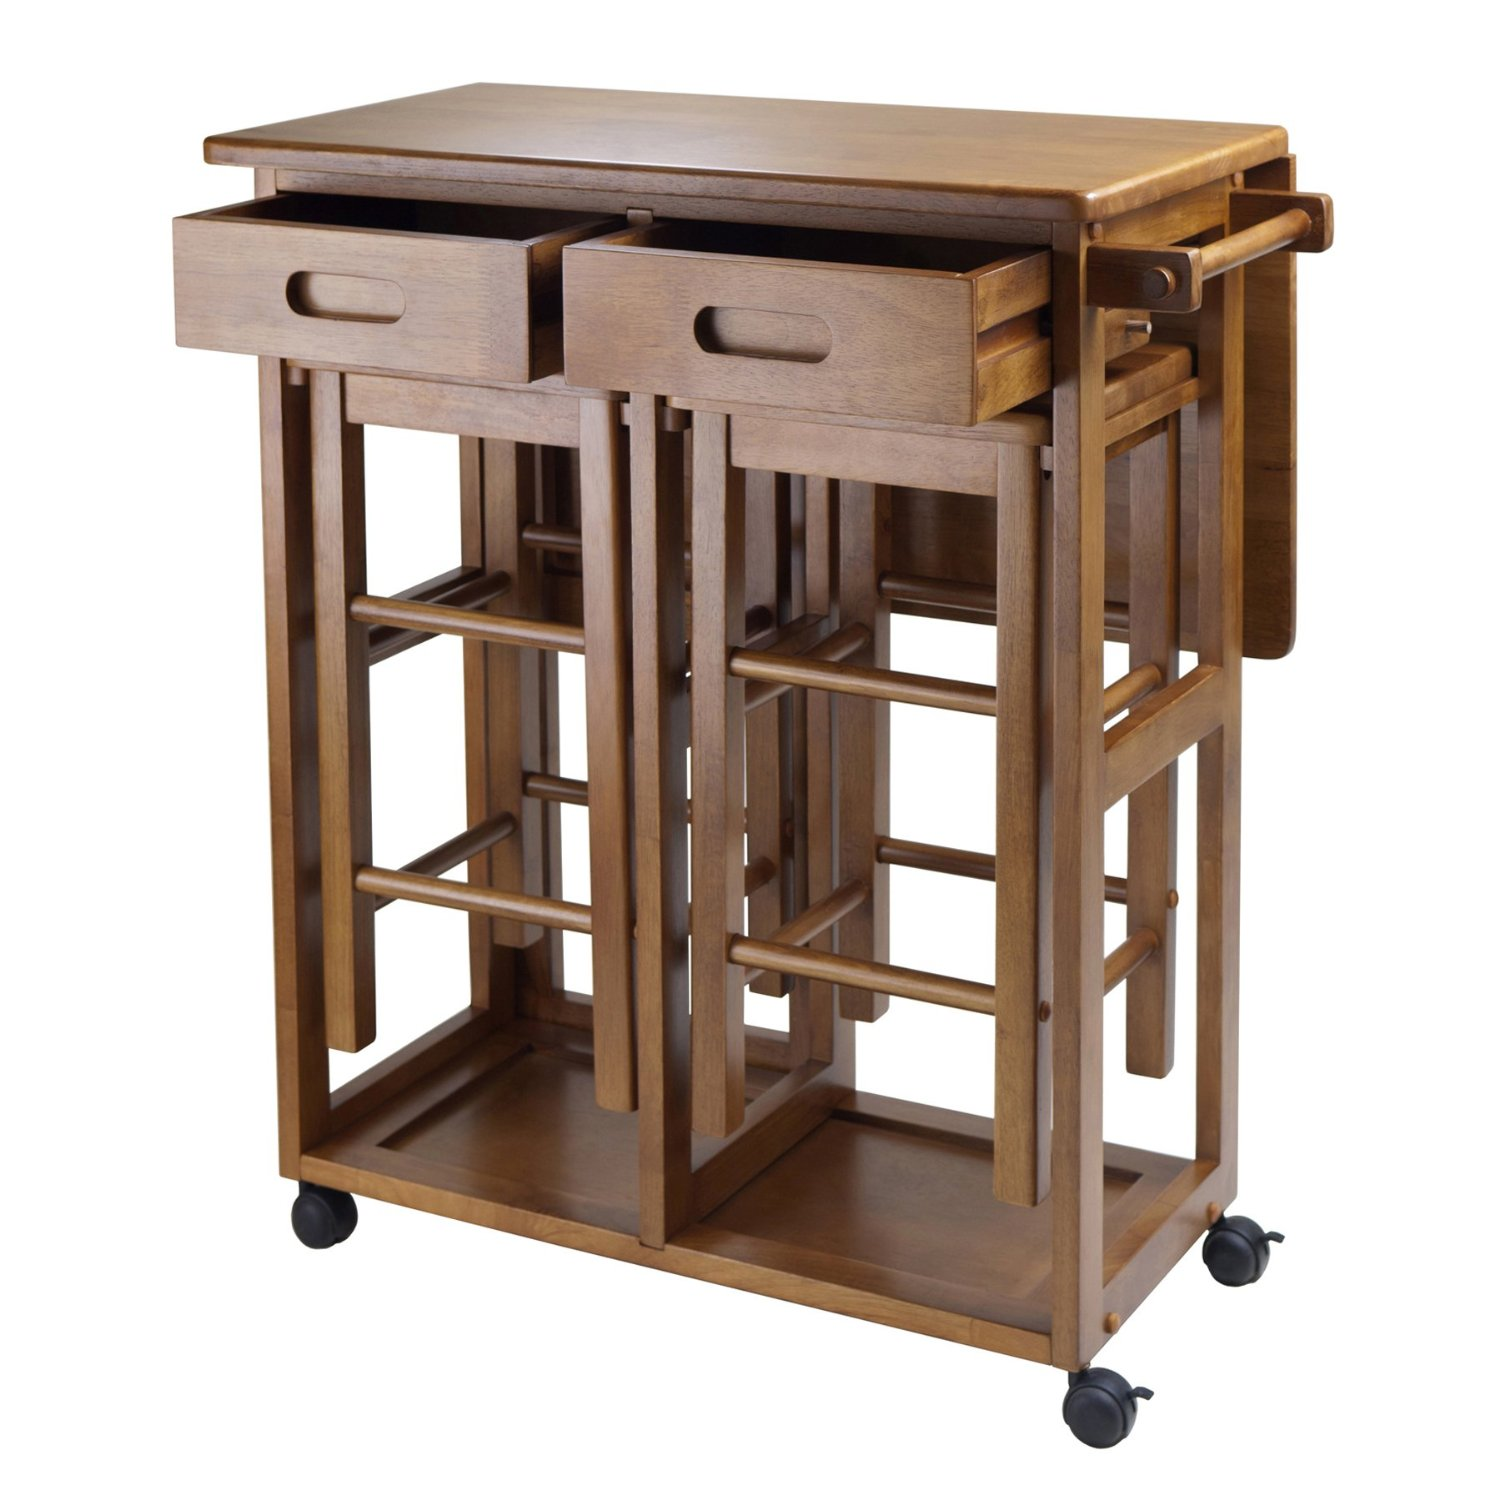 Drop Leaf Tables for Small Spaces - HomesFeed